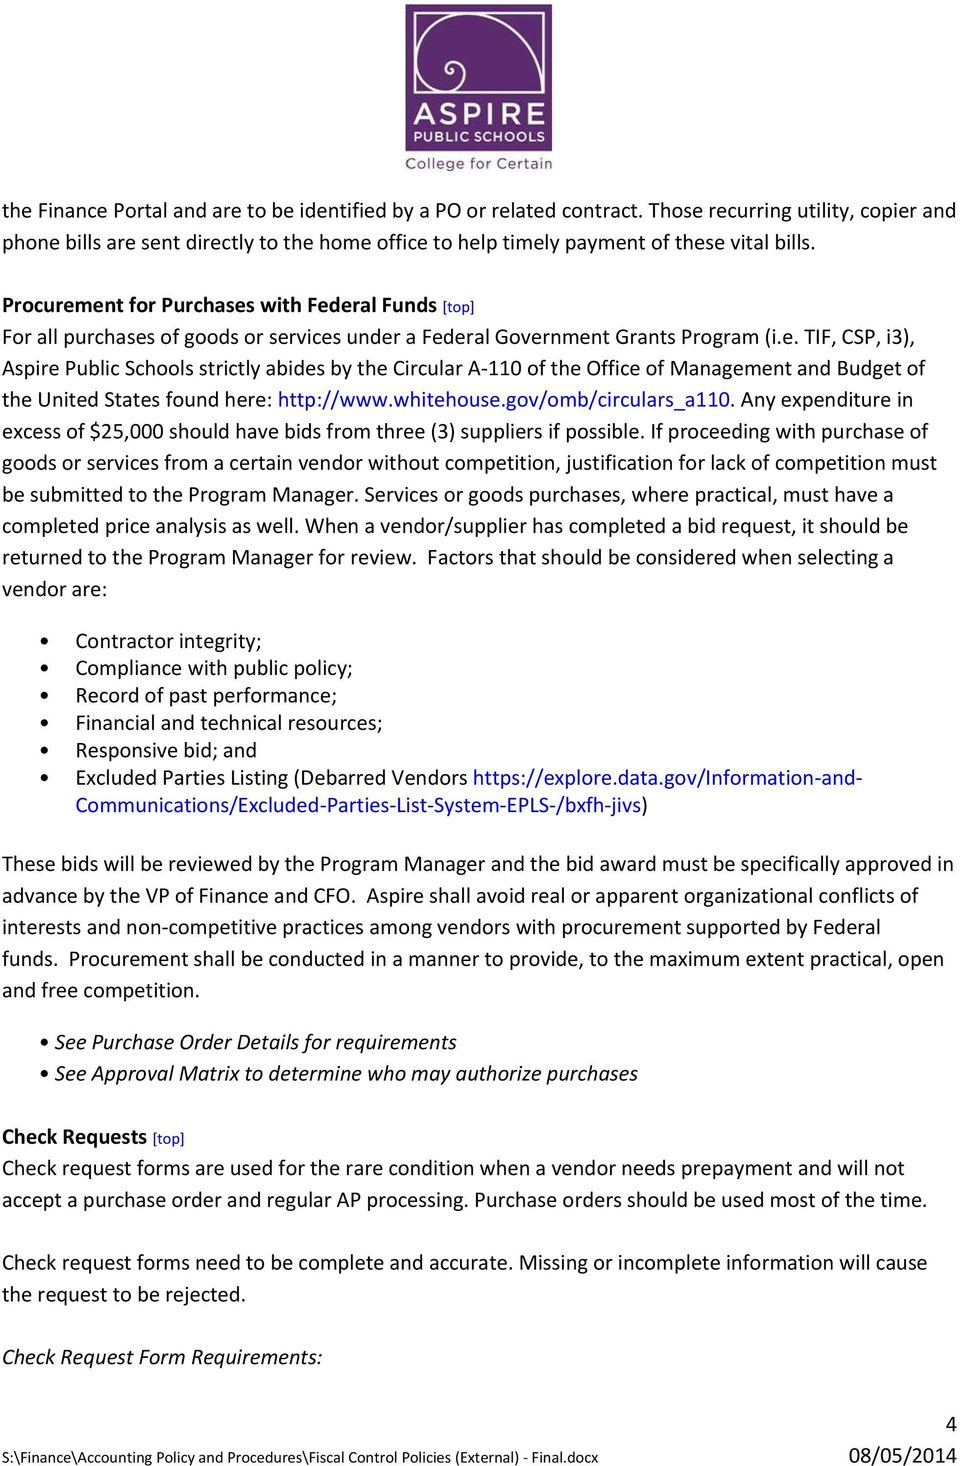 Procurement for Purchases with Federal Funds [top] For all purchases of goods or services under a Federal Government Grants Program (i.e. TIF, CSP, i3), Aspire Public Schools strictly abides by the Circular A 110 of the Office of Management and Budget of the United States found here: http://www.